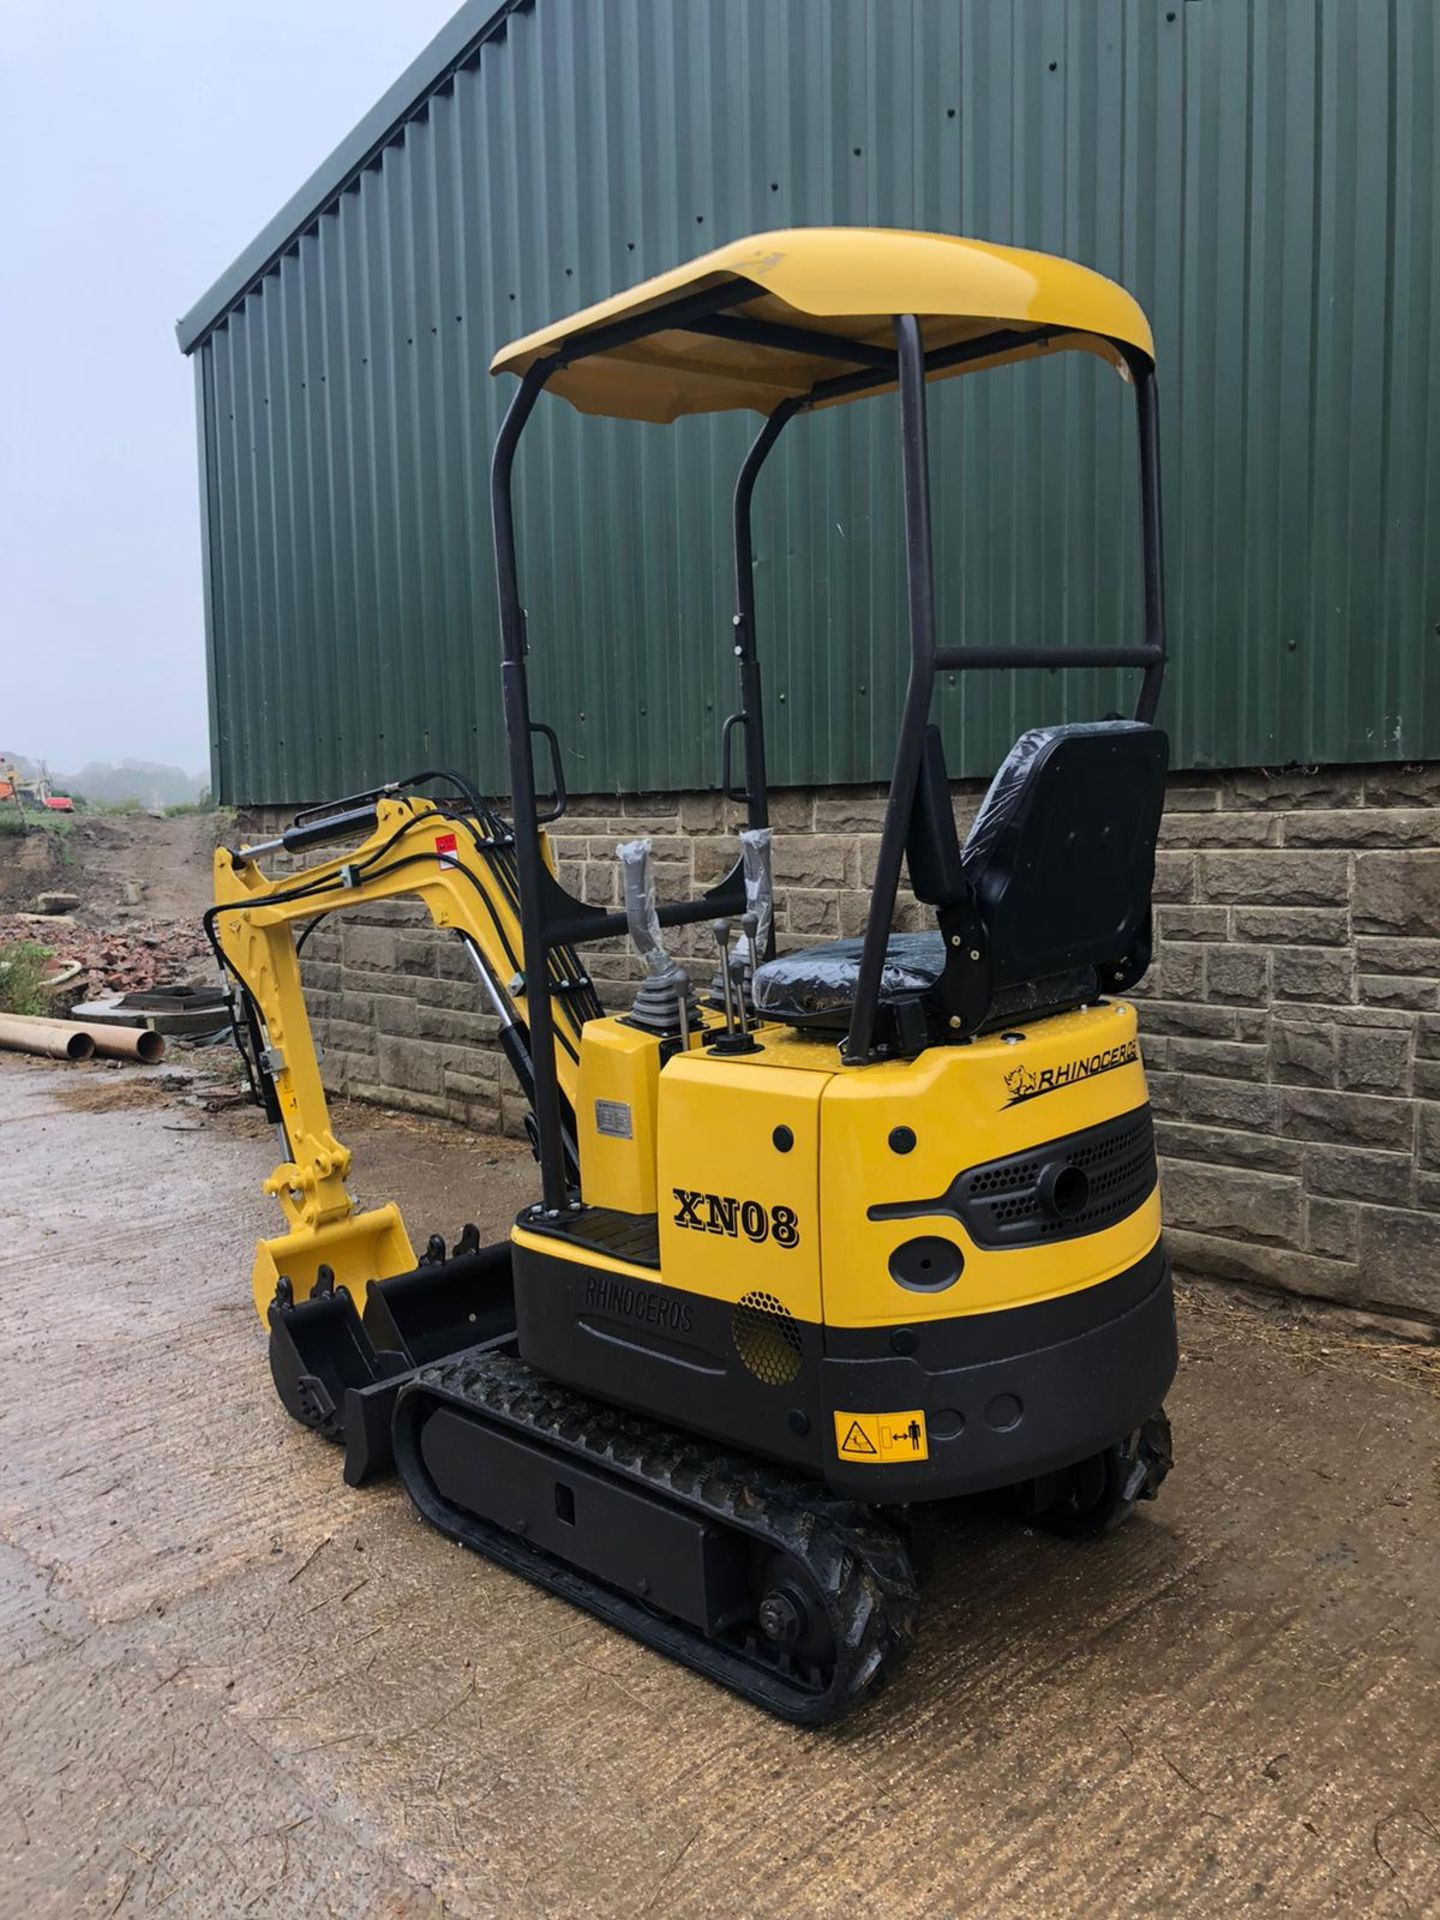 2020 RHINOCEROS XN08 EXCAVATOR RUBBER TRACKS, CANOPY, 3 X BUCKETS, RUNS, DRIVES AND DIGS *PLUS VAT* - Image 4 of 5